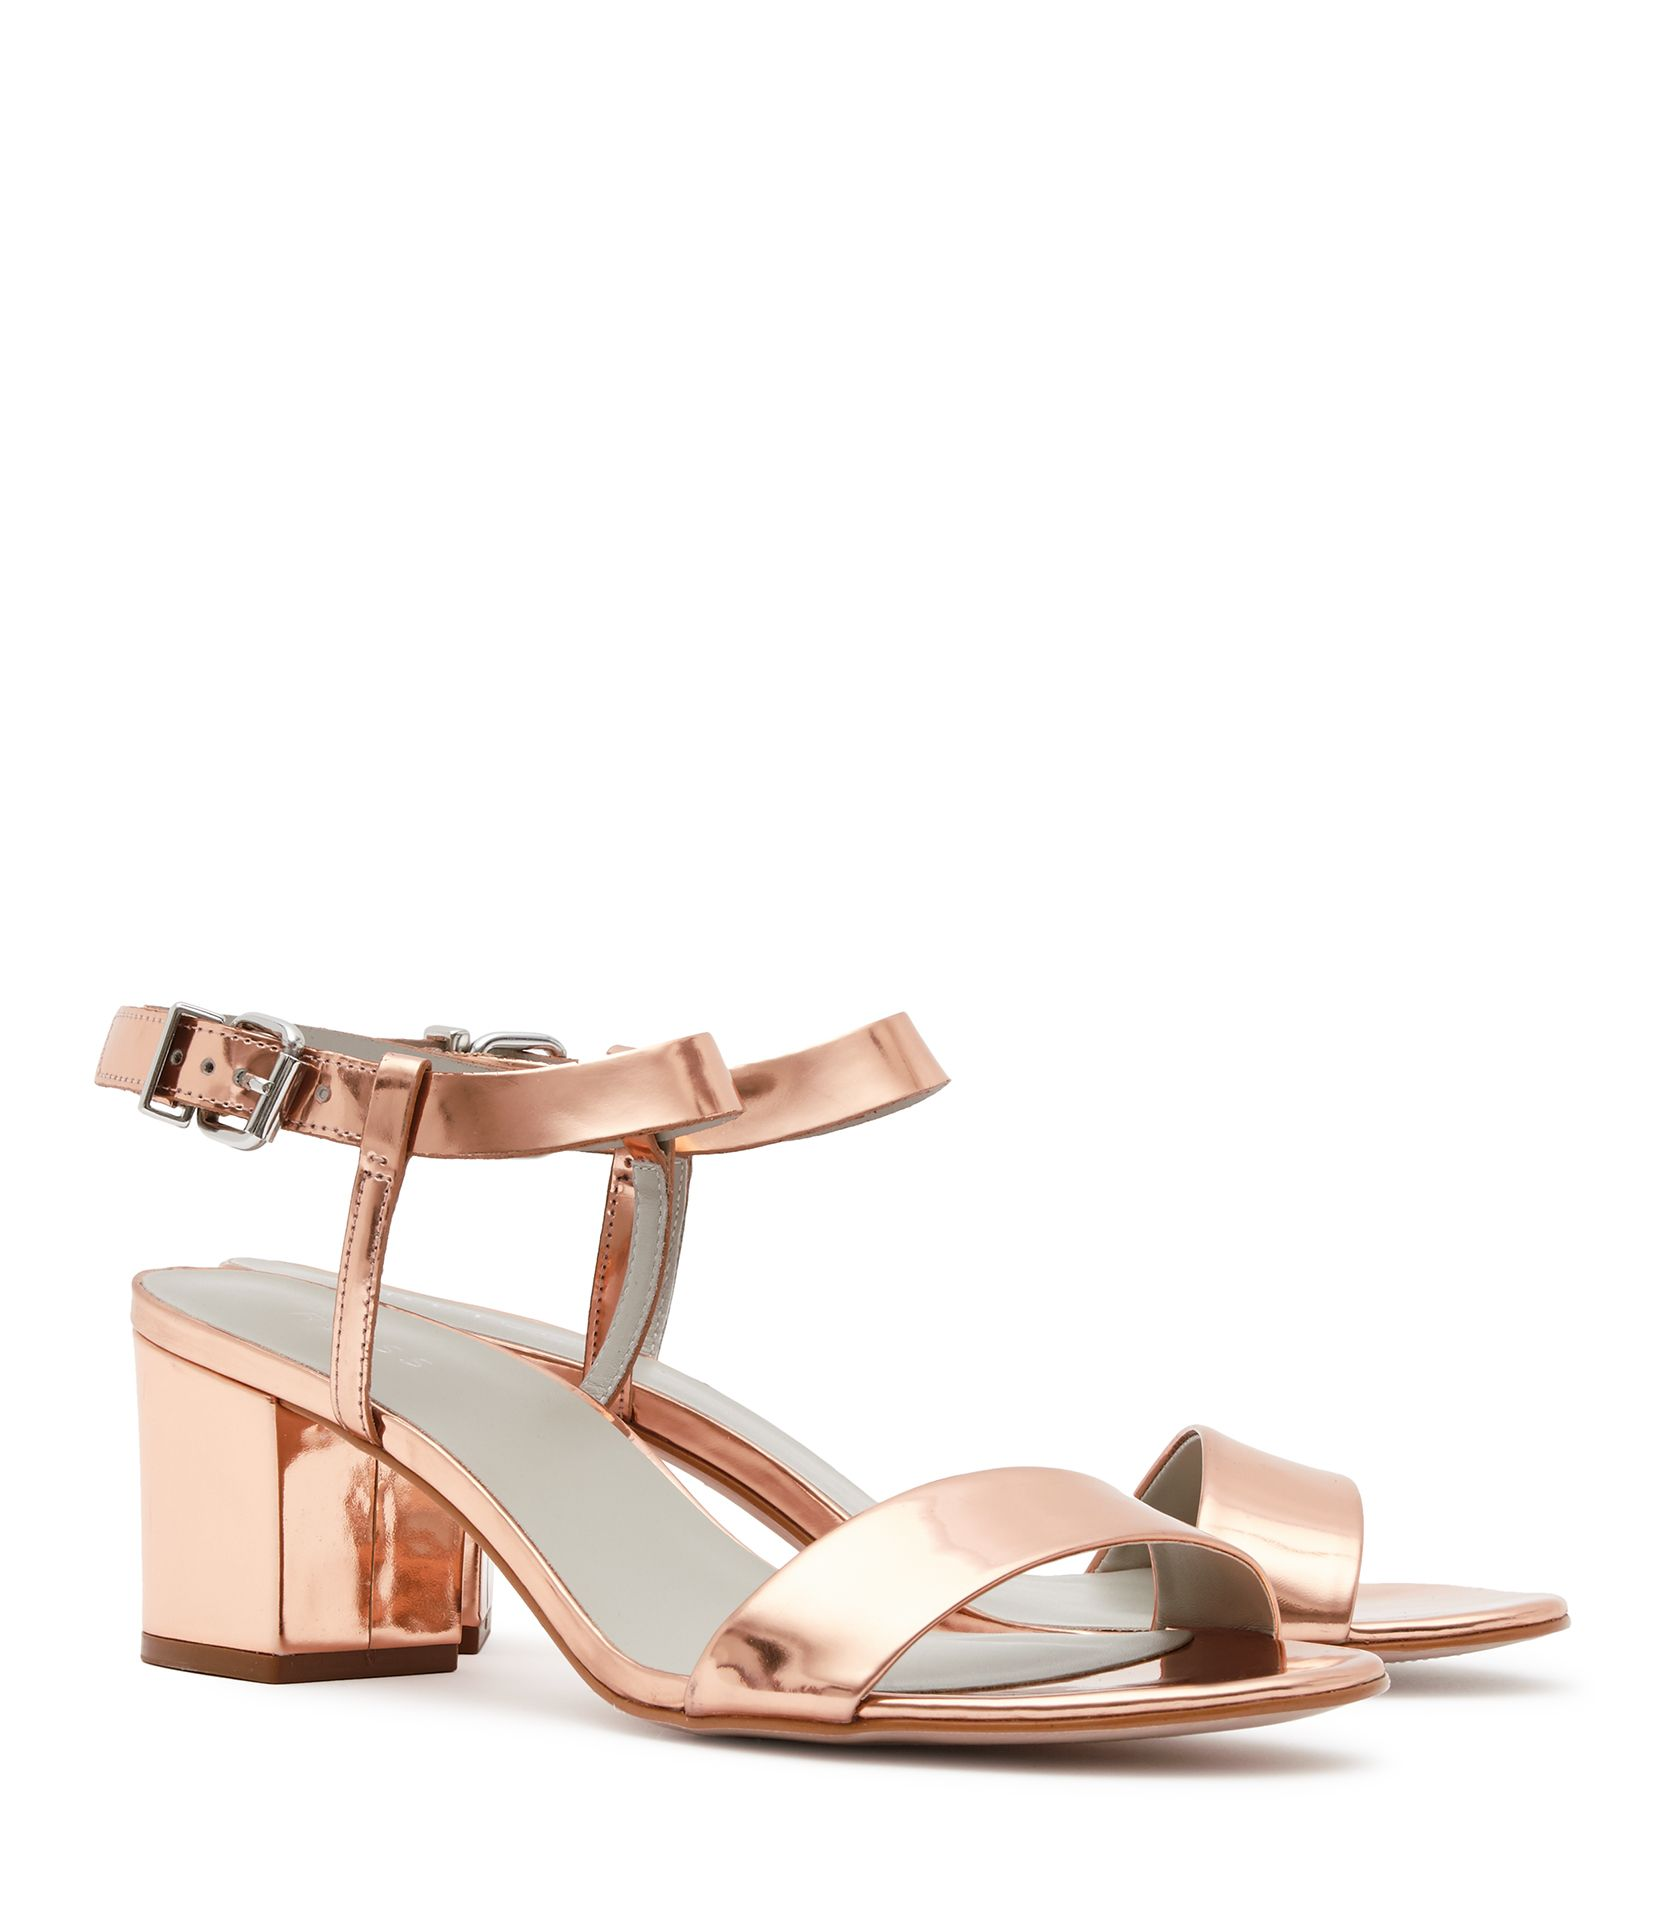 ac6e9319f83 Womens Rose Gold Block Mid-heel Sandals - Reiss Vivi | outthink ...